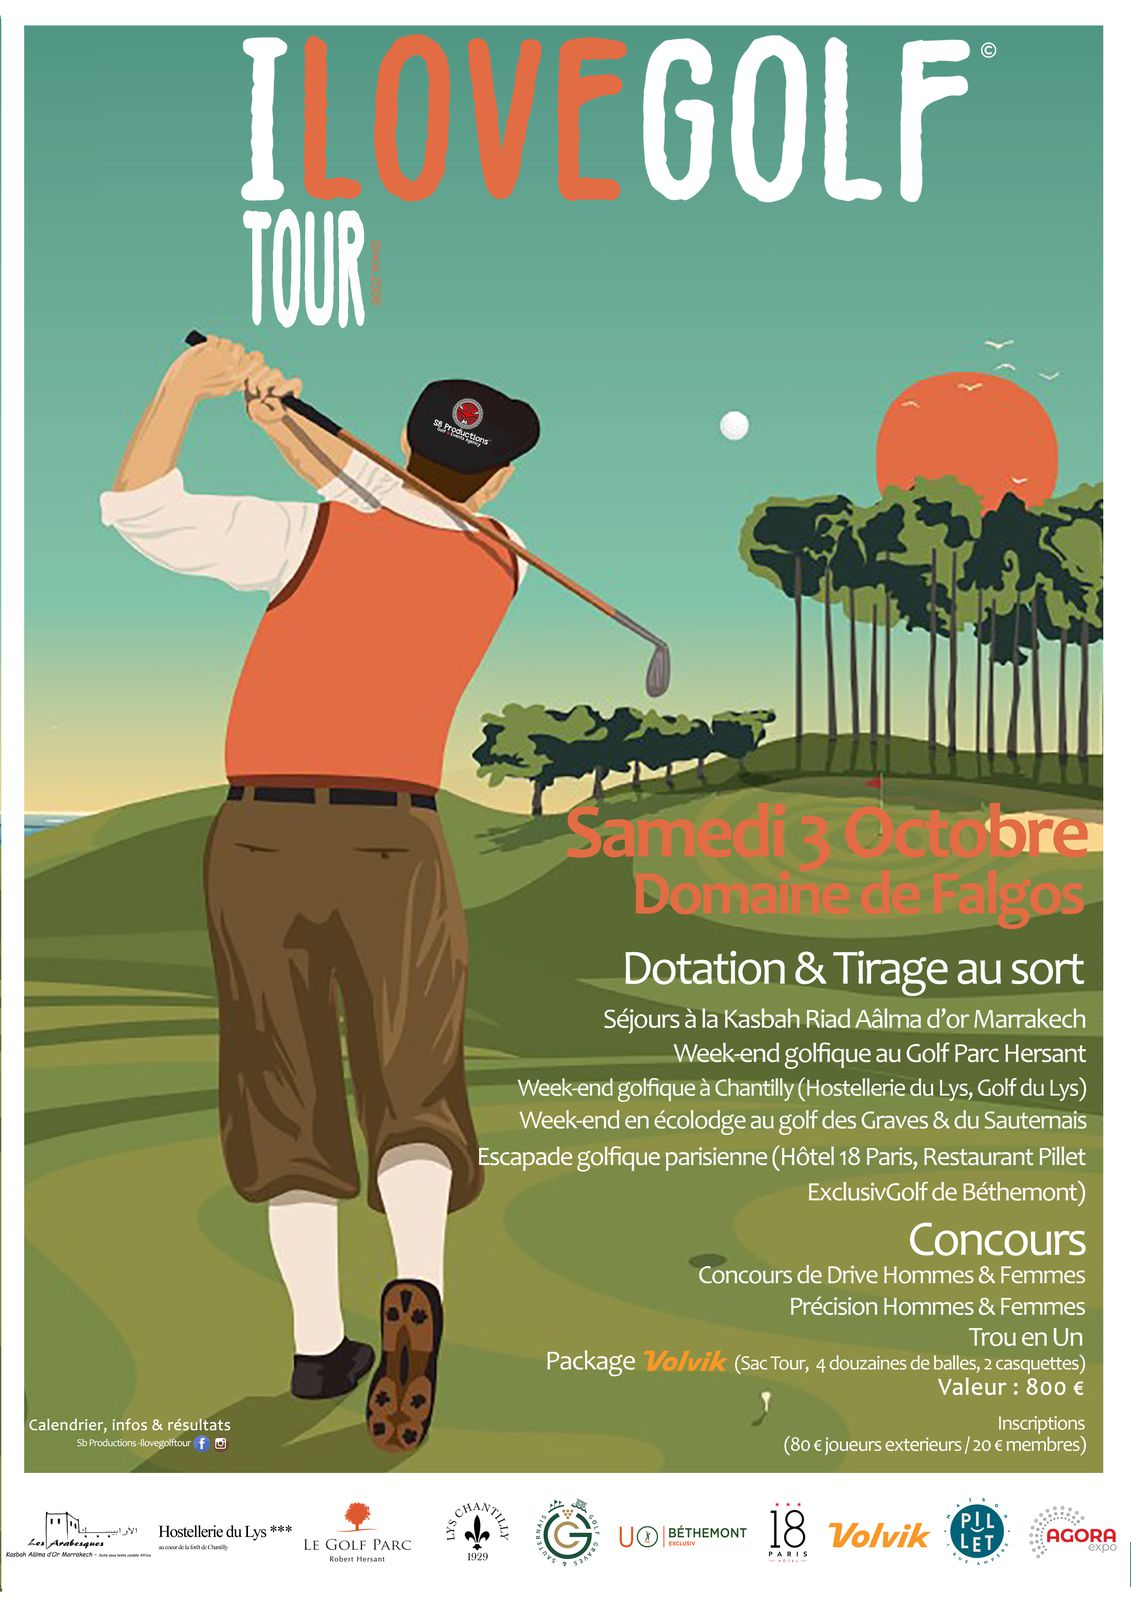 I love Golf Tour le 3 octobre à Falgos